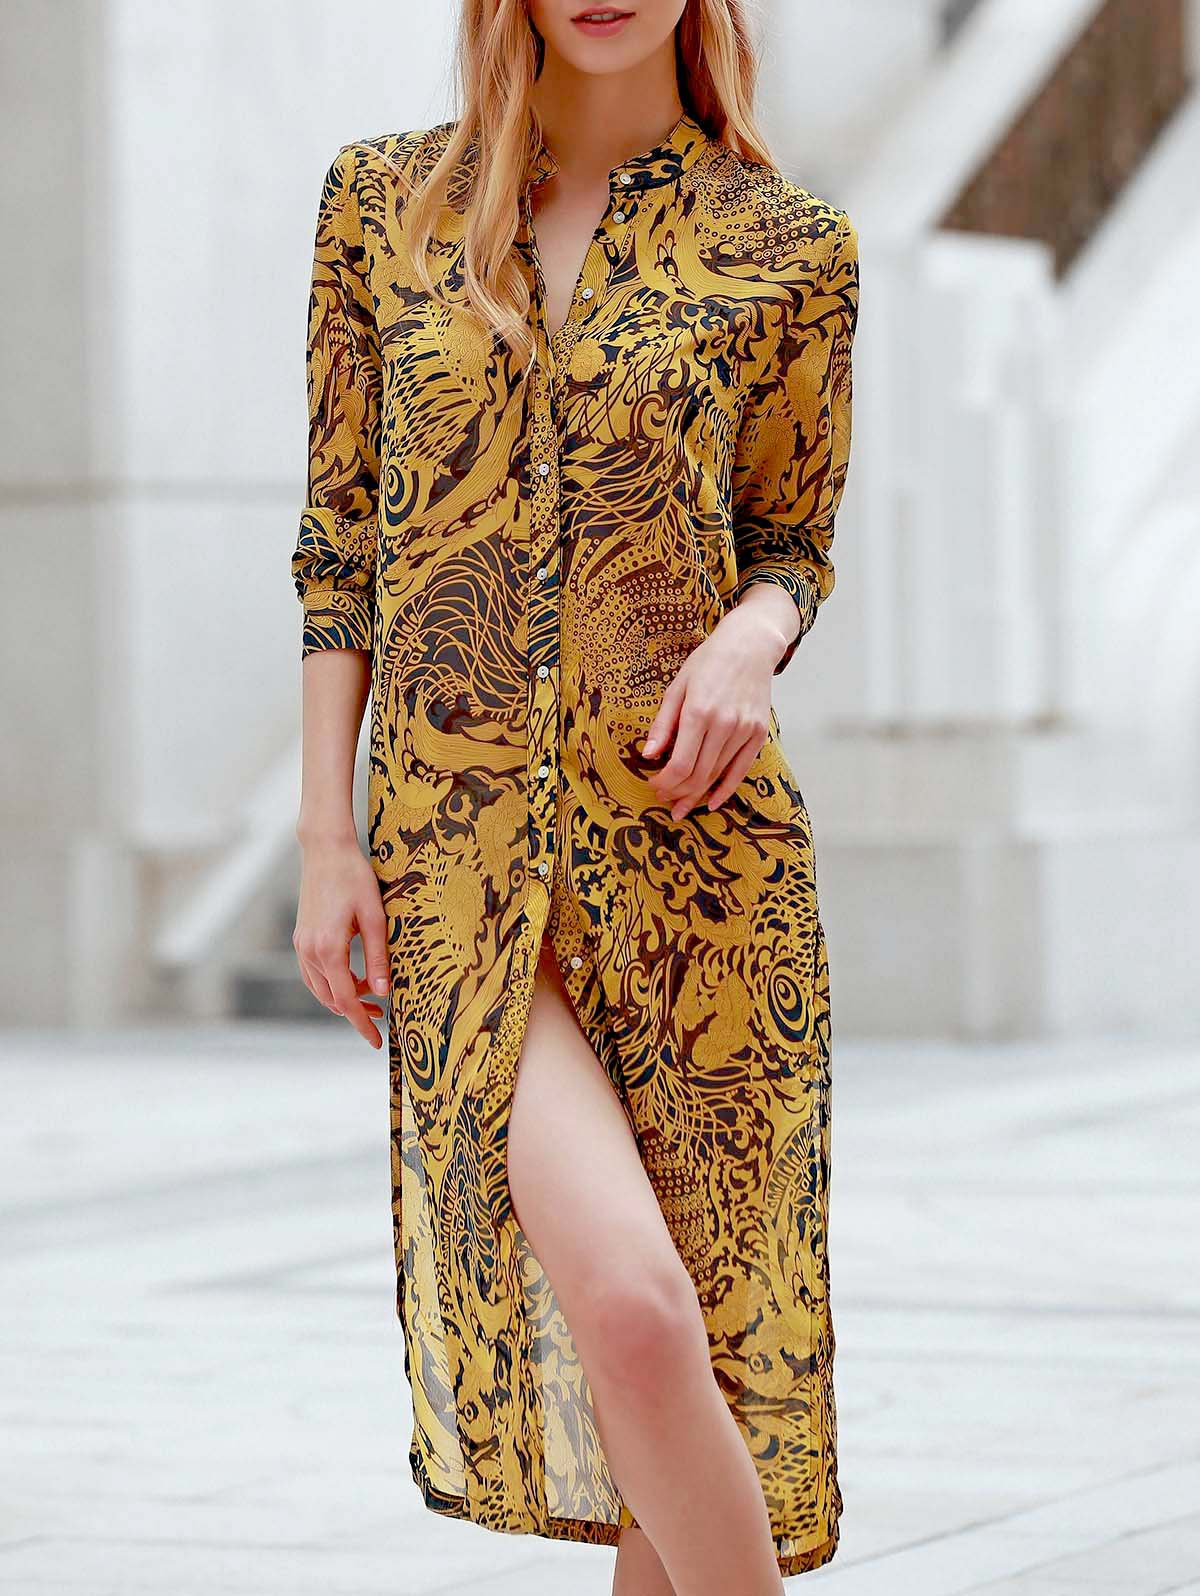 Vintage Style Stand-Up Collar Long Sleeve Printed Slit Women's Shirt Dress